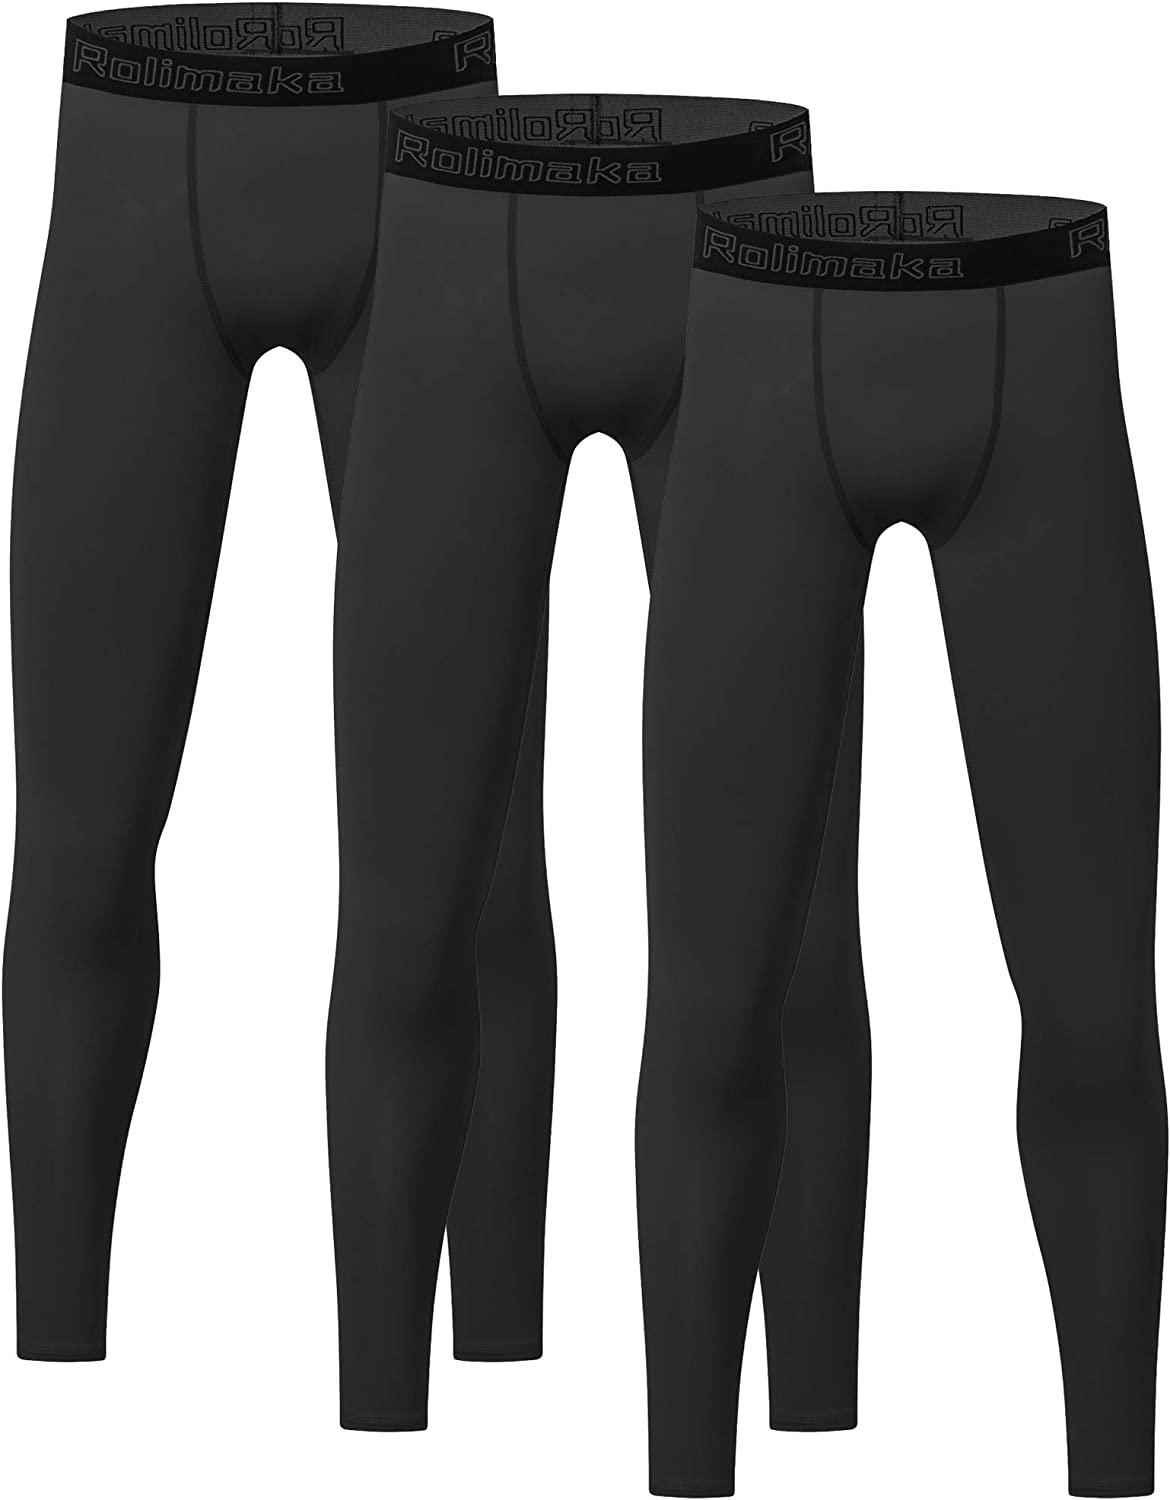 3 Pack Youth Boys' Compression Leggings Tights Athletic Pants Sports Base Layer for Kids Cold Gear